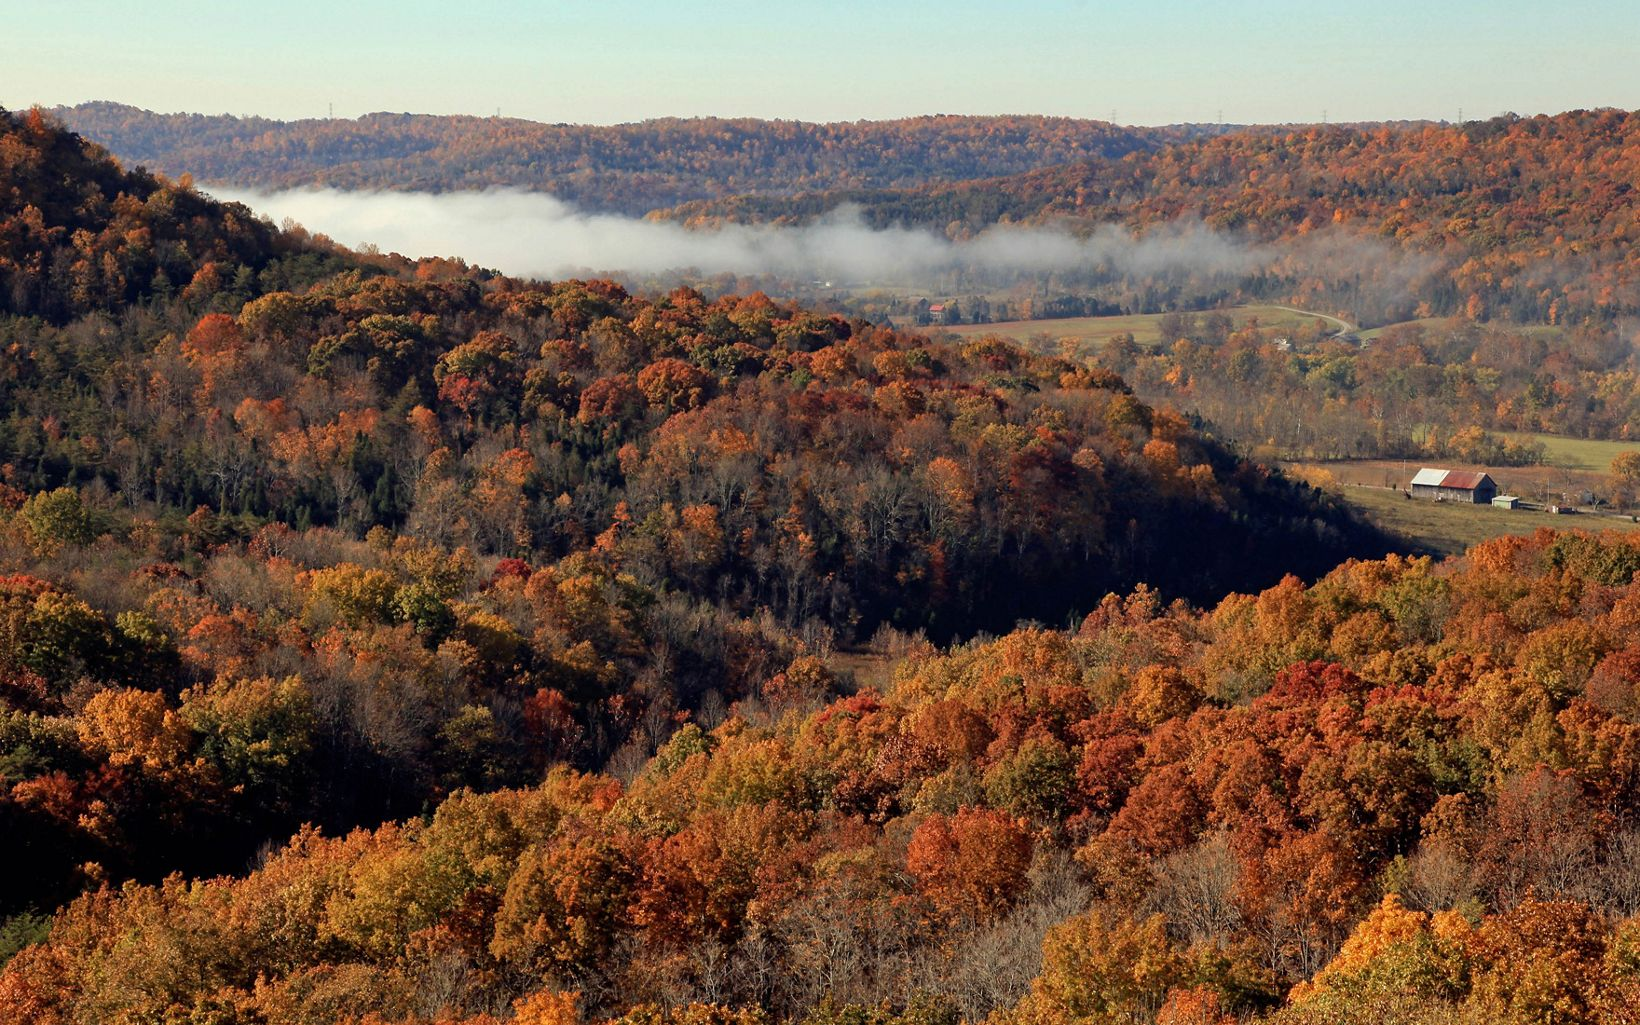 Autumn view of the lookout from Buzzardroost Rock.